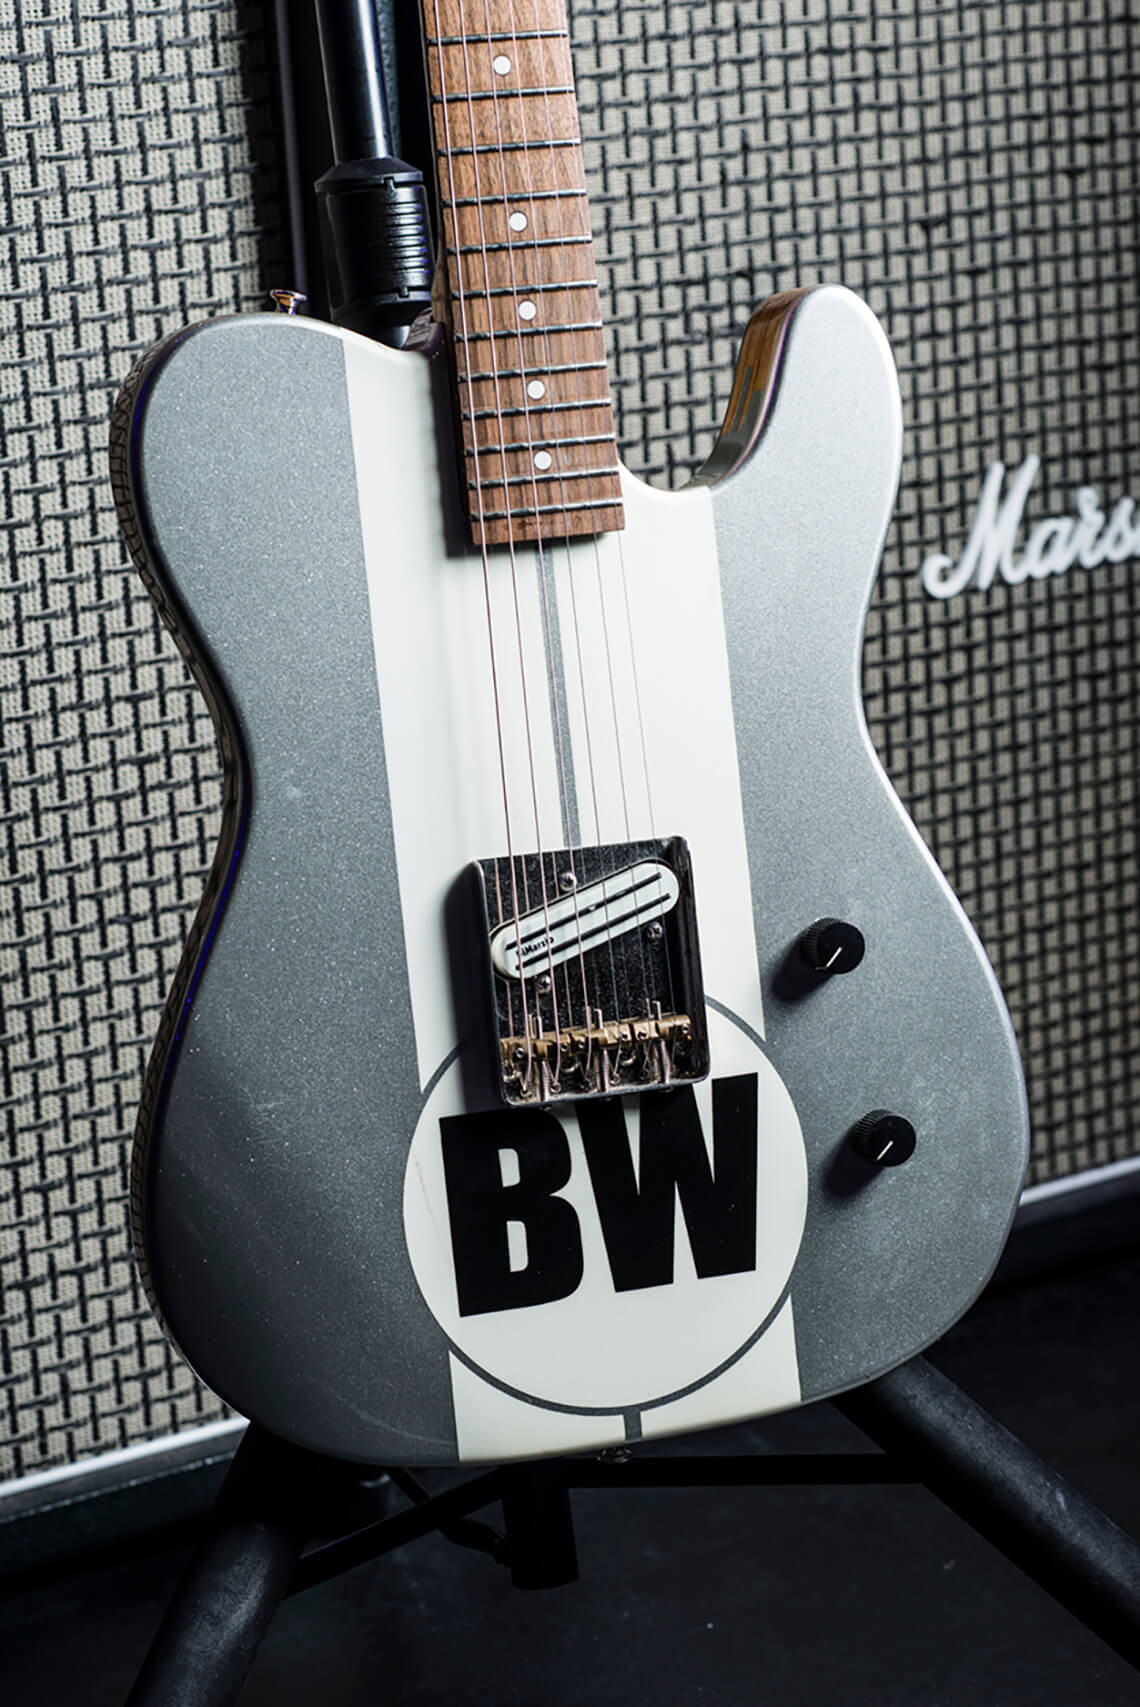 Brad Whitford Green guitar Project